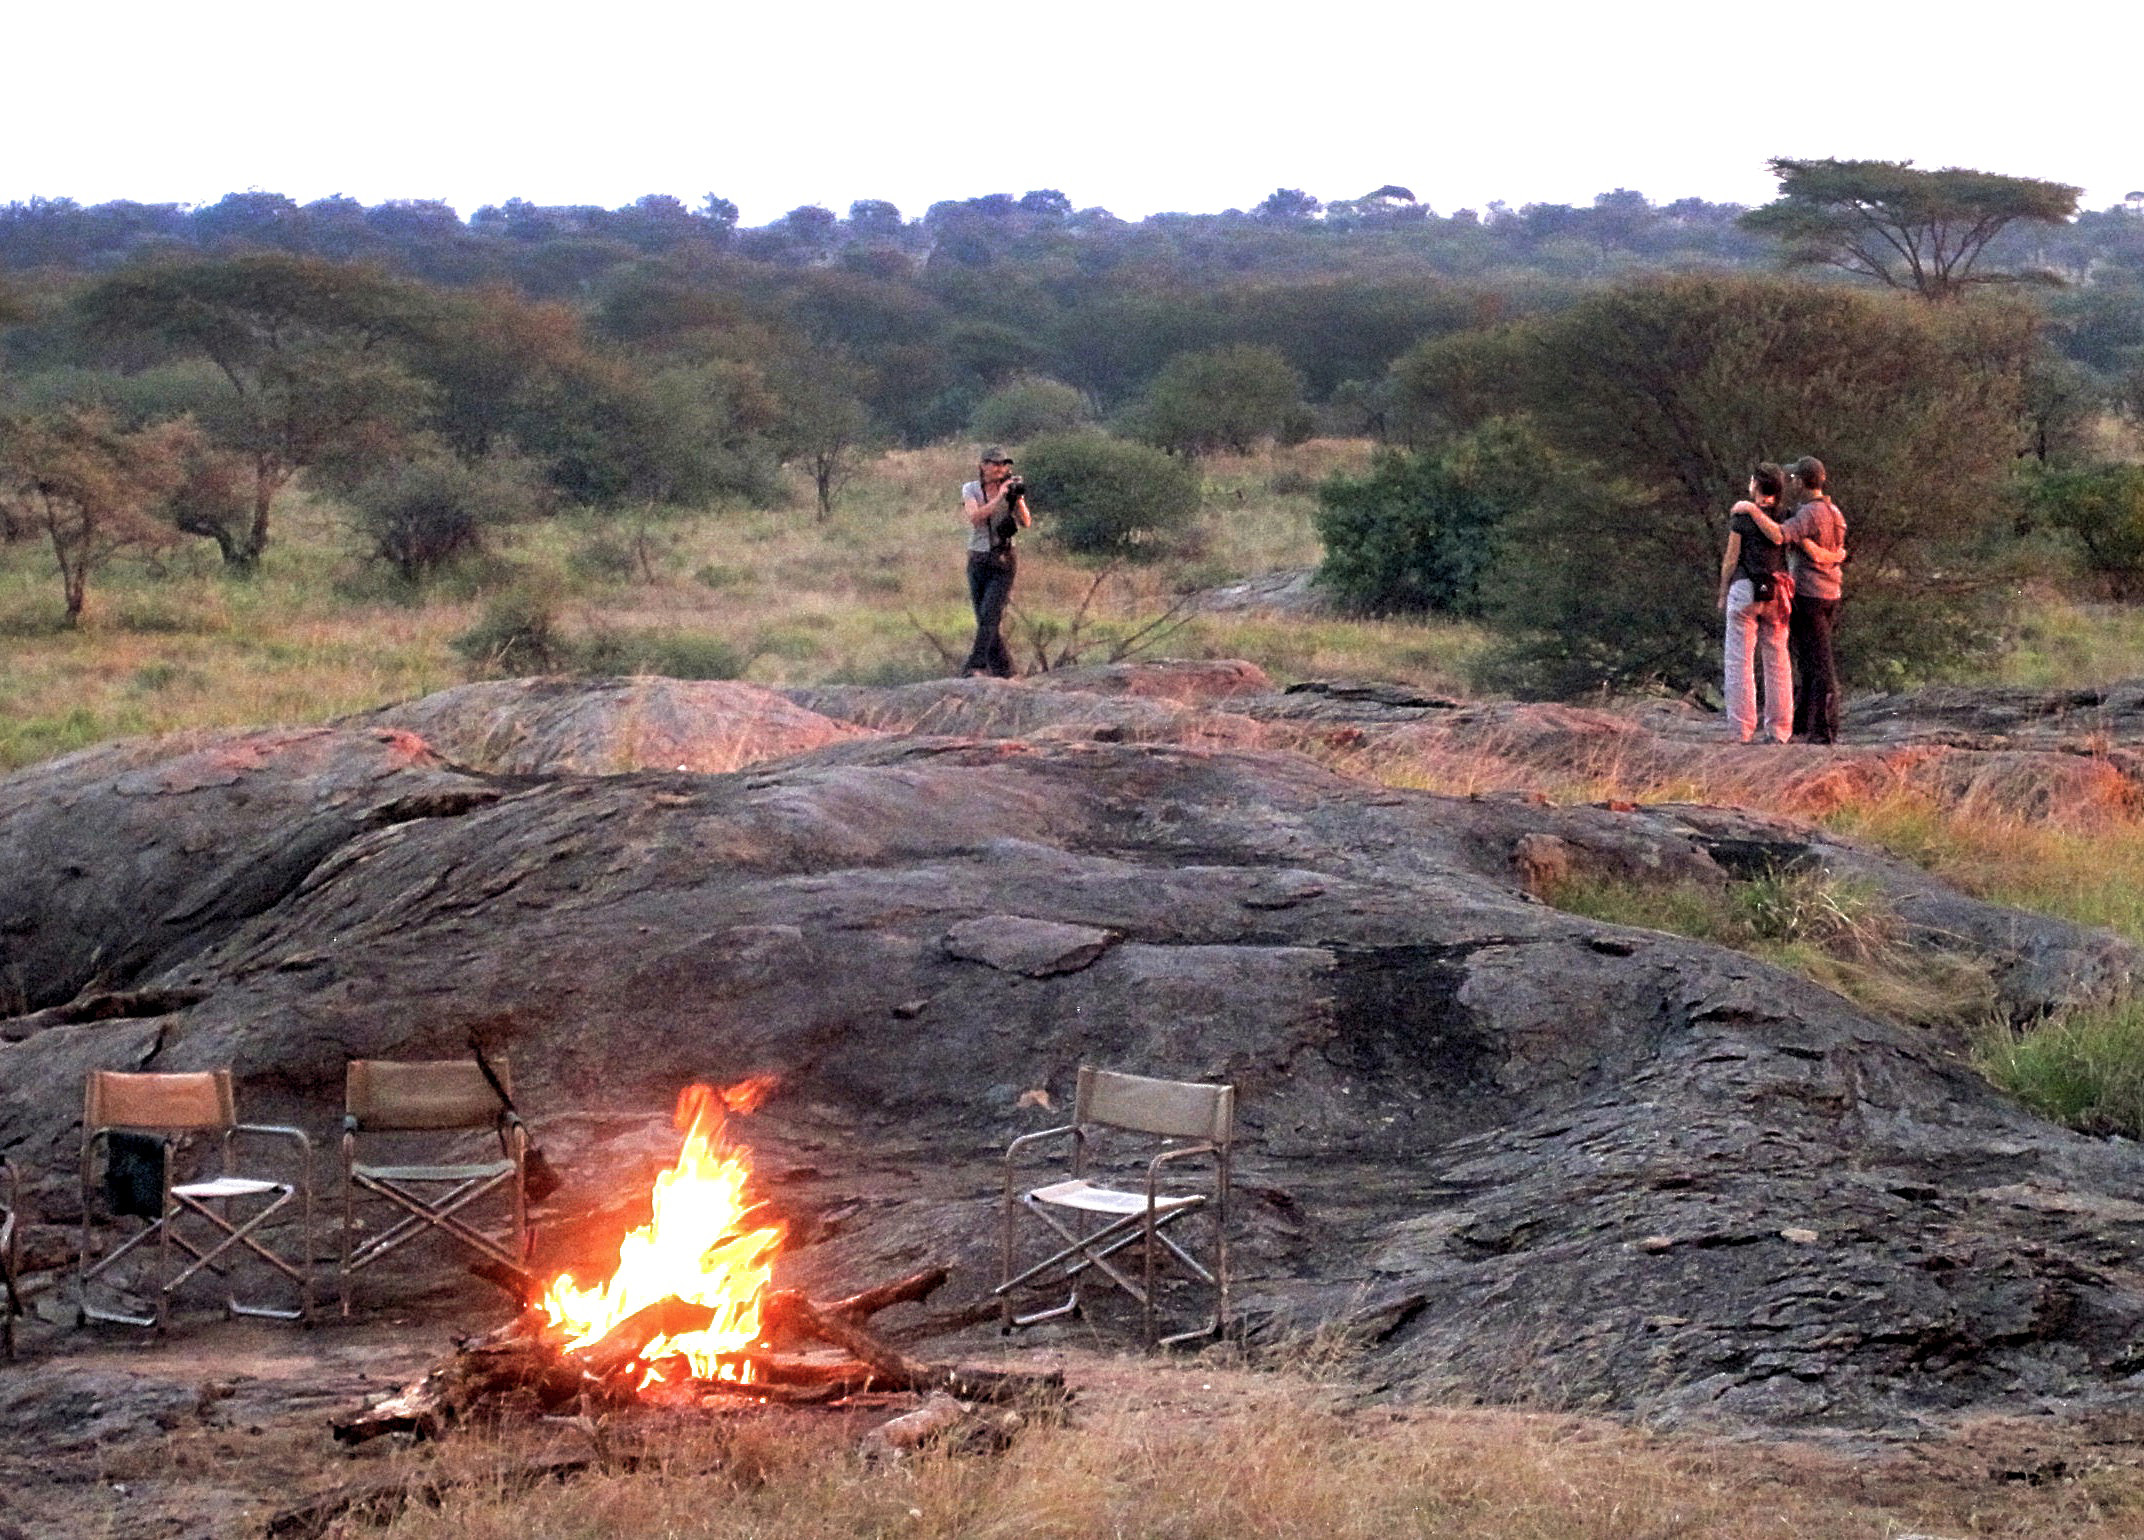 CLIMATE - Climate is mild and beautiful. At about 5500 feet, we enjoy cool evenings and mornings. When the sun comes out, it can average 80ºF, but by sundown, we are putting our fleeces on around the campfire. Perfect.